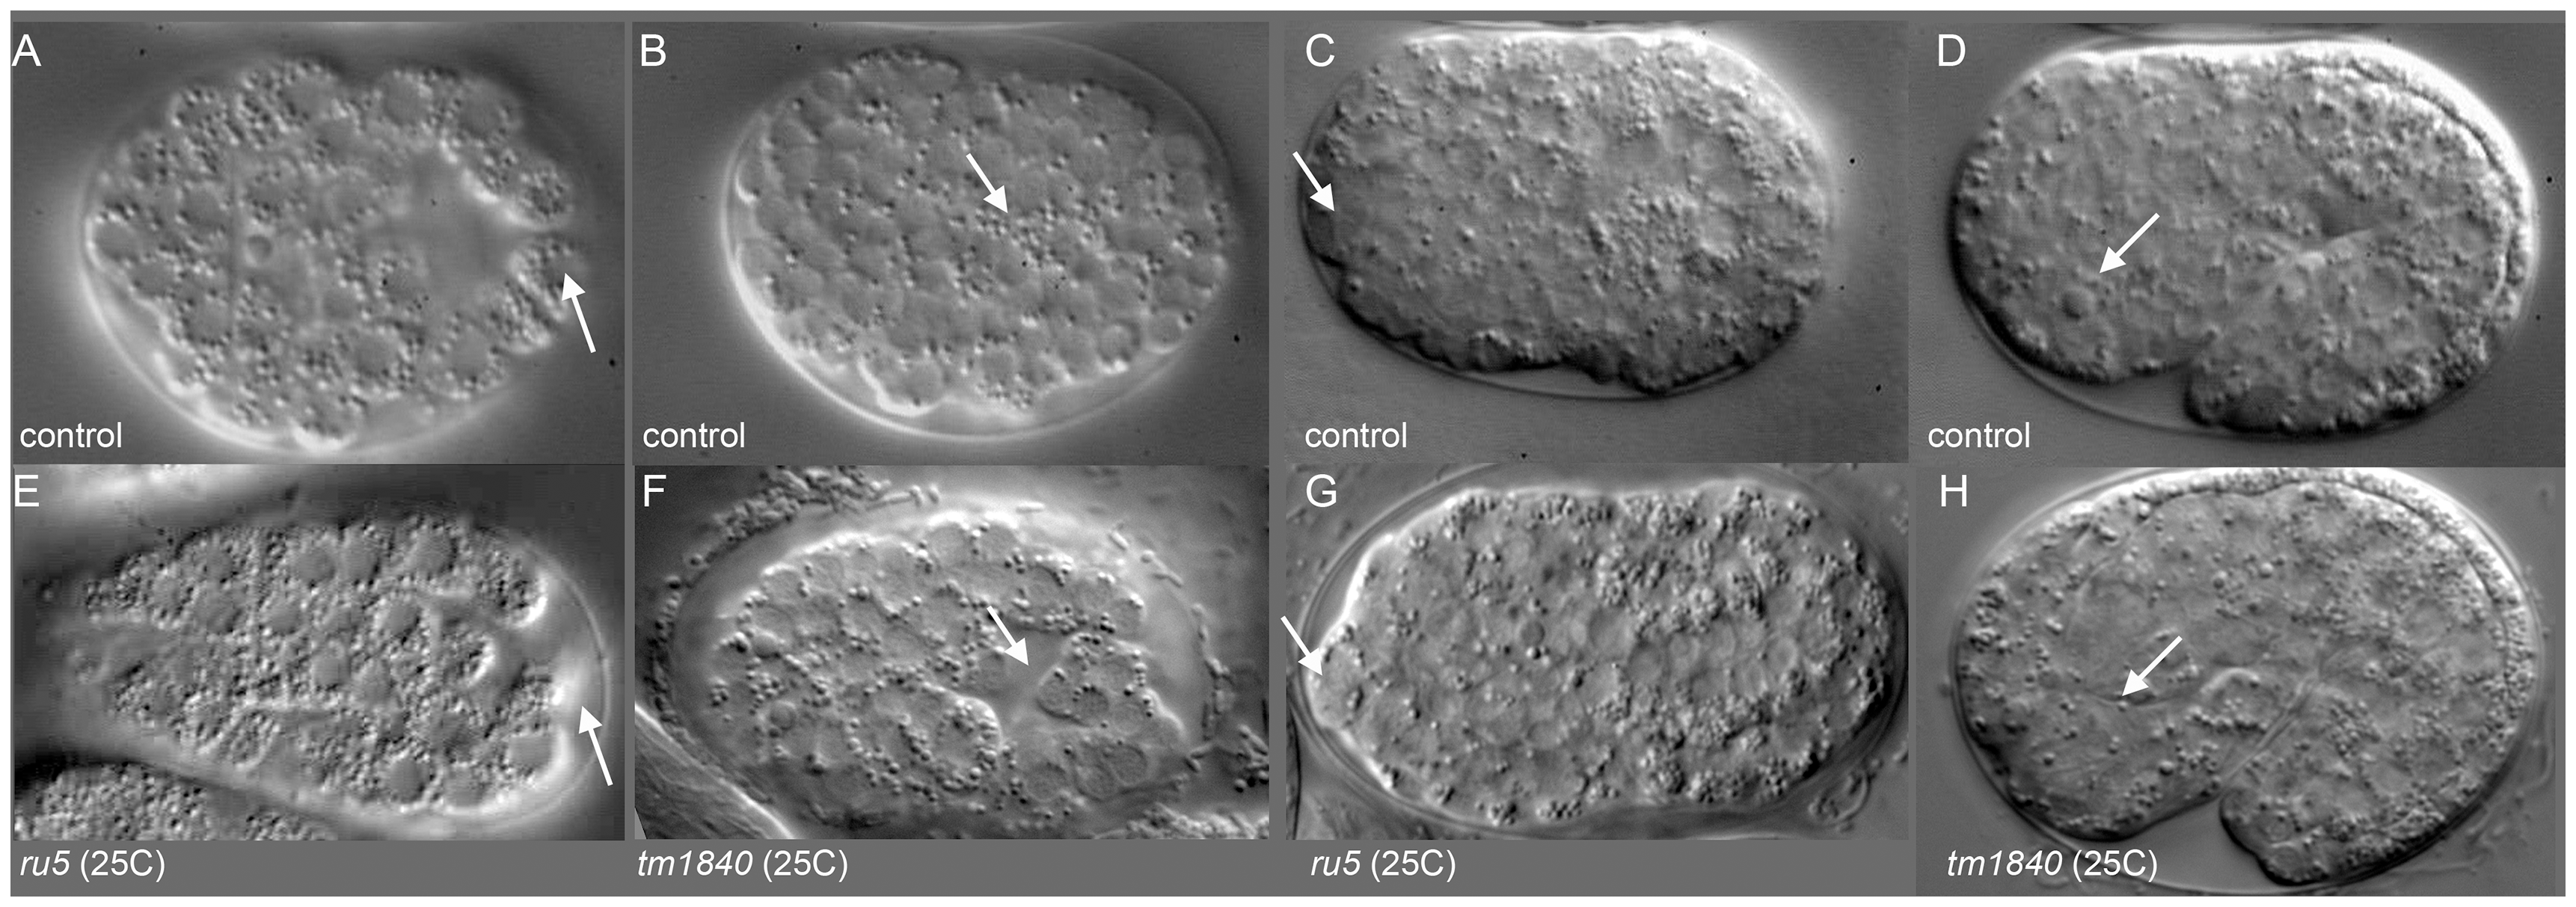 <i>pmr-1</i> mutant embryos show differences in the positioning of cells during and after gastrulation.